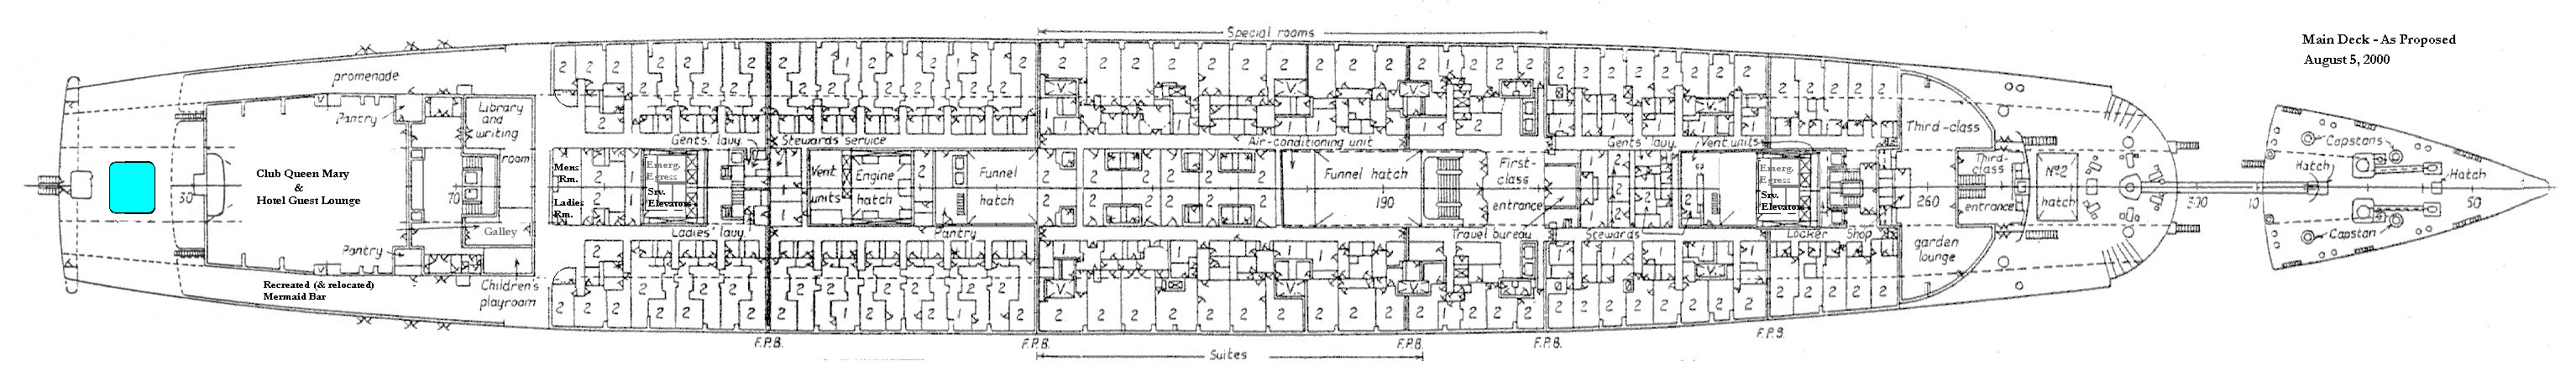 Queen mary deck by deck deckplan illustrating our preservation and adaptive reuse plan option a baanklon Gallery